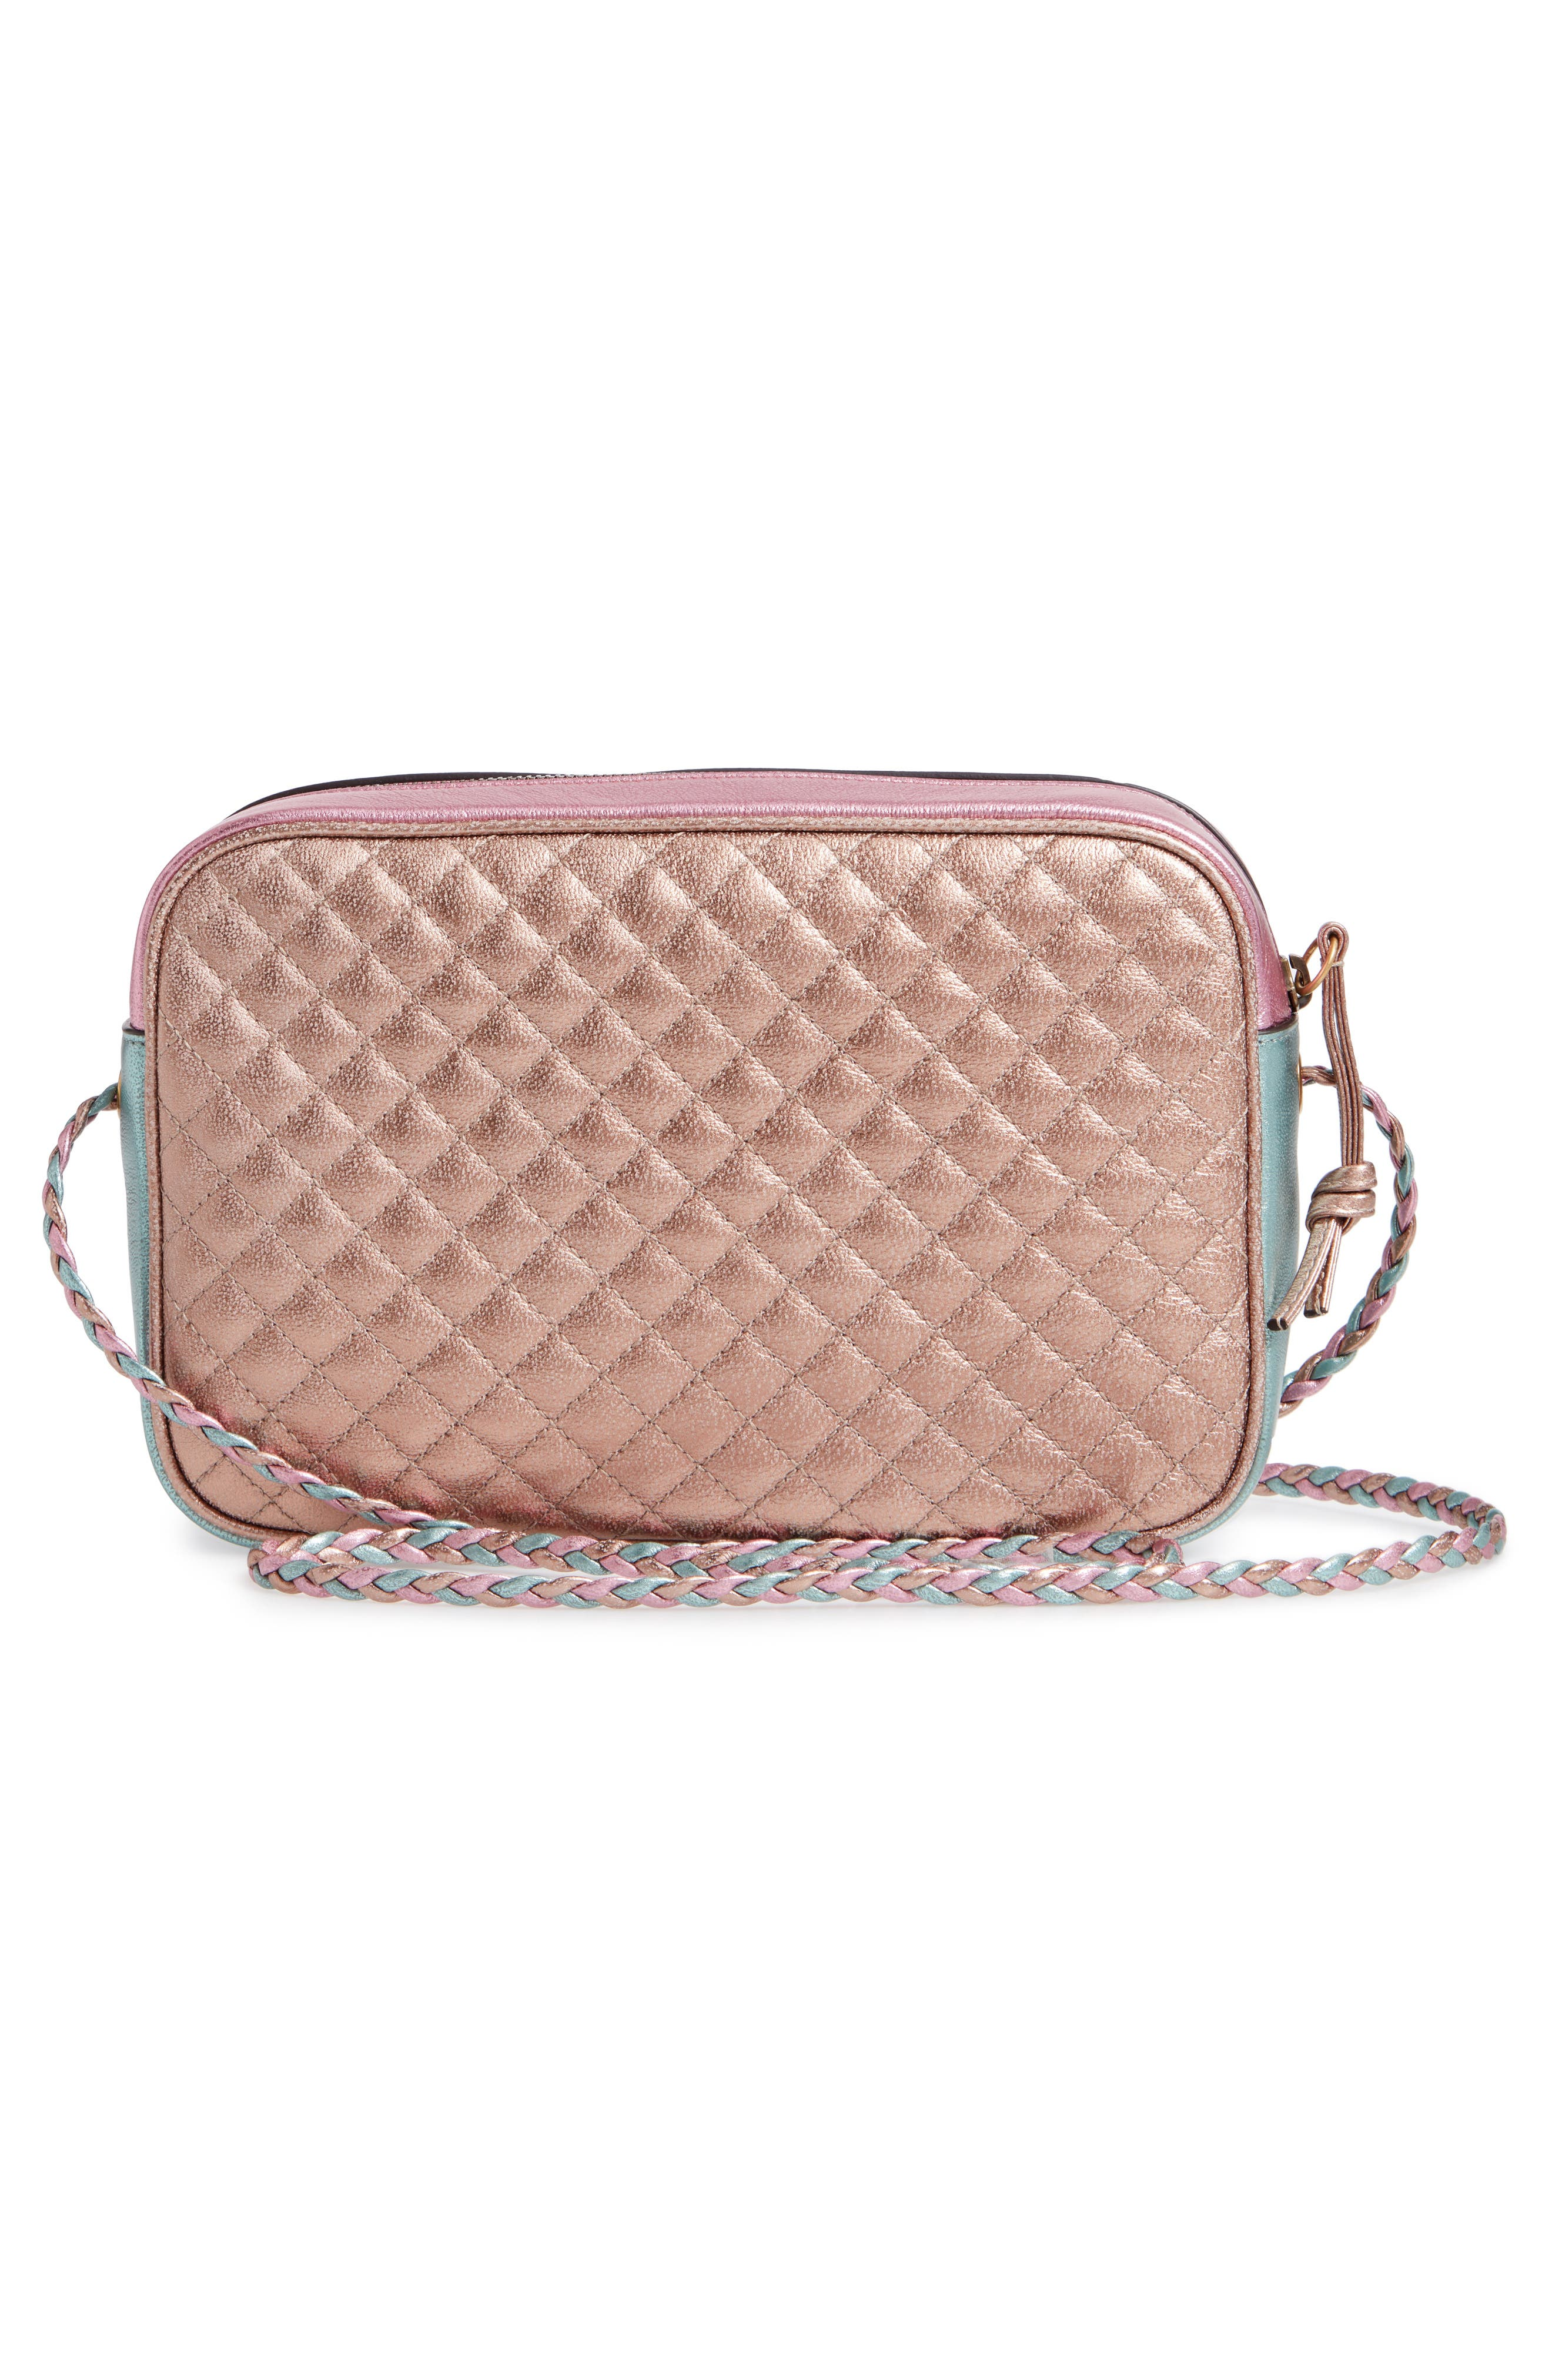 GUCCI, Small Quilted Metallic Leather Shoulder Bag, Alternate thumbnail 3, color, ROSE/ BLUE